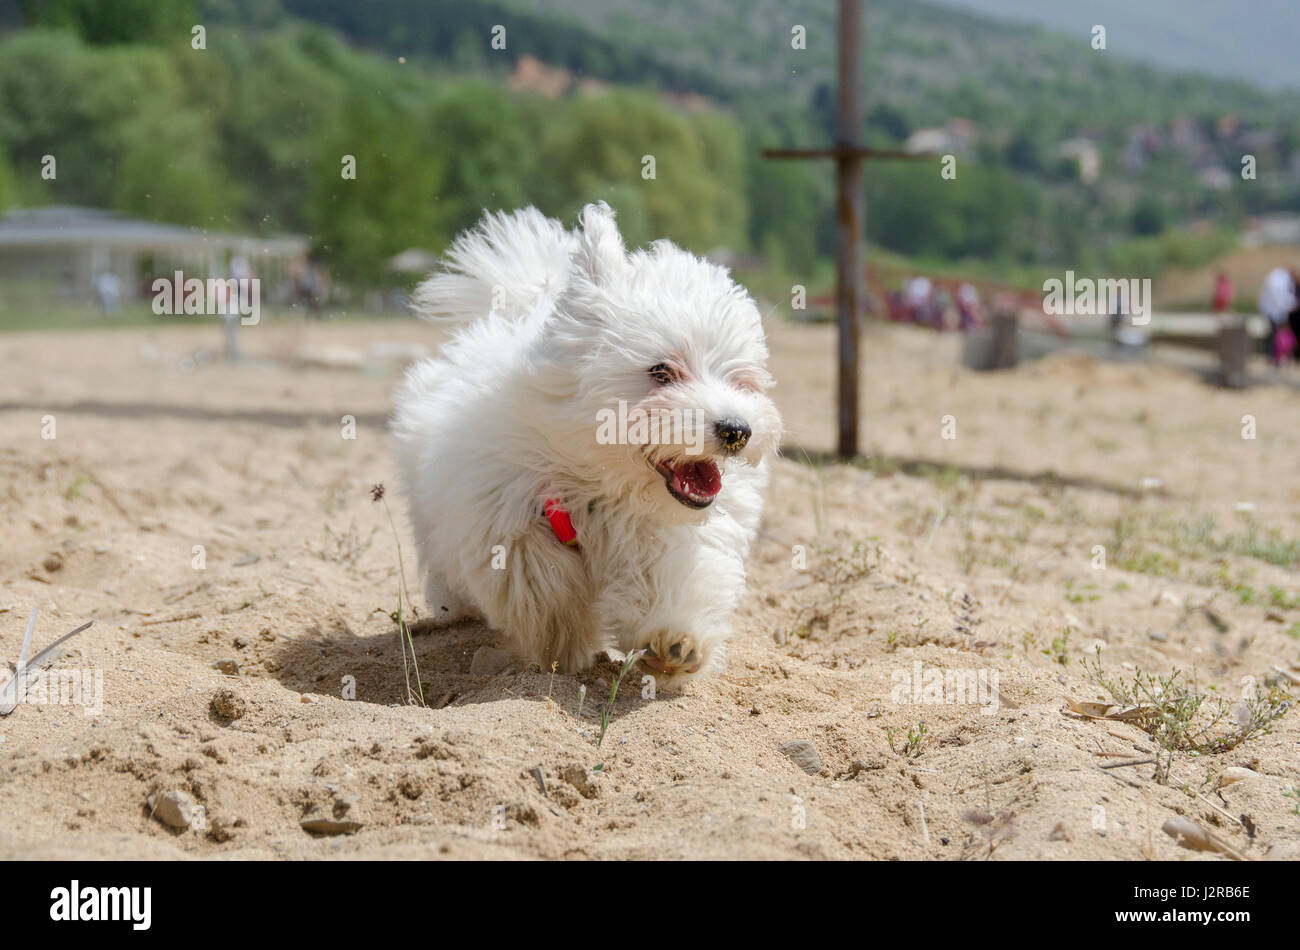 Cute puppy running - Maltese puppy - Stock Image